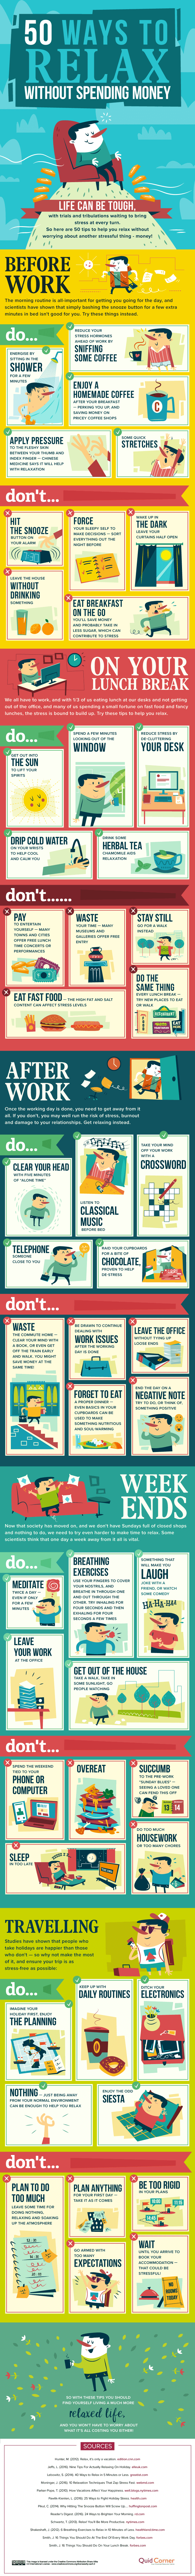 50 Ways to Relax without Spending Money. This enormous infographic is a guide to the do's and don'ts of living a more relaxing and stress-free life -- WITHOUT breaking the bank!